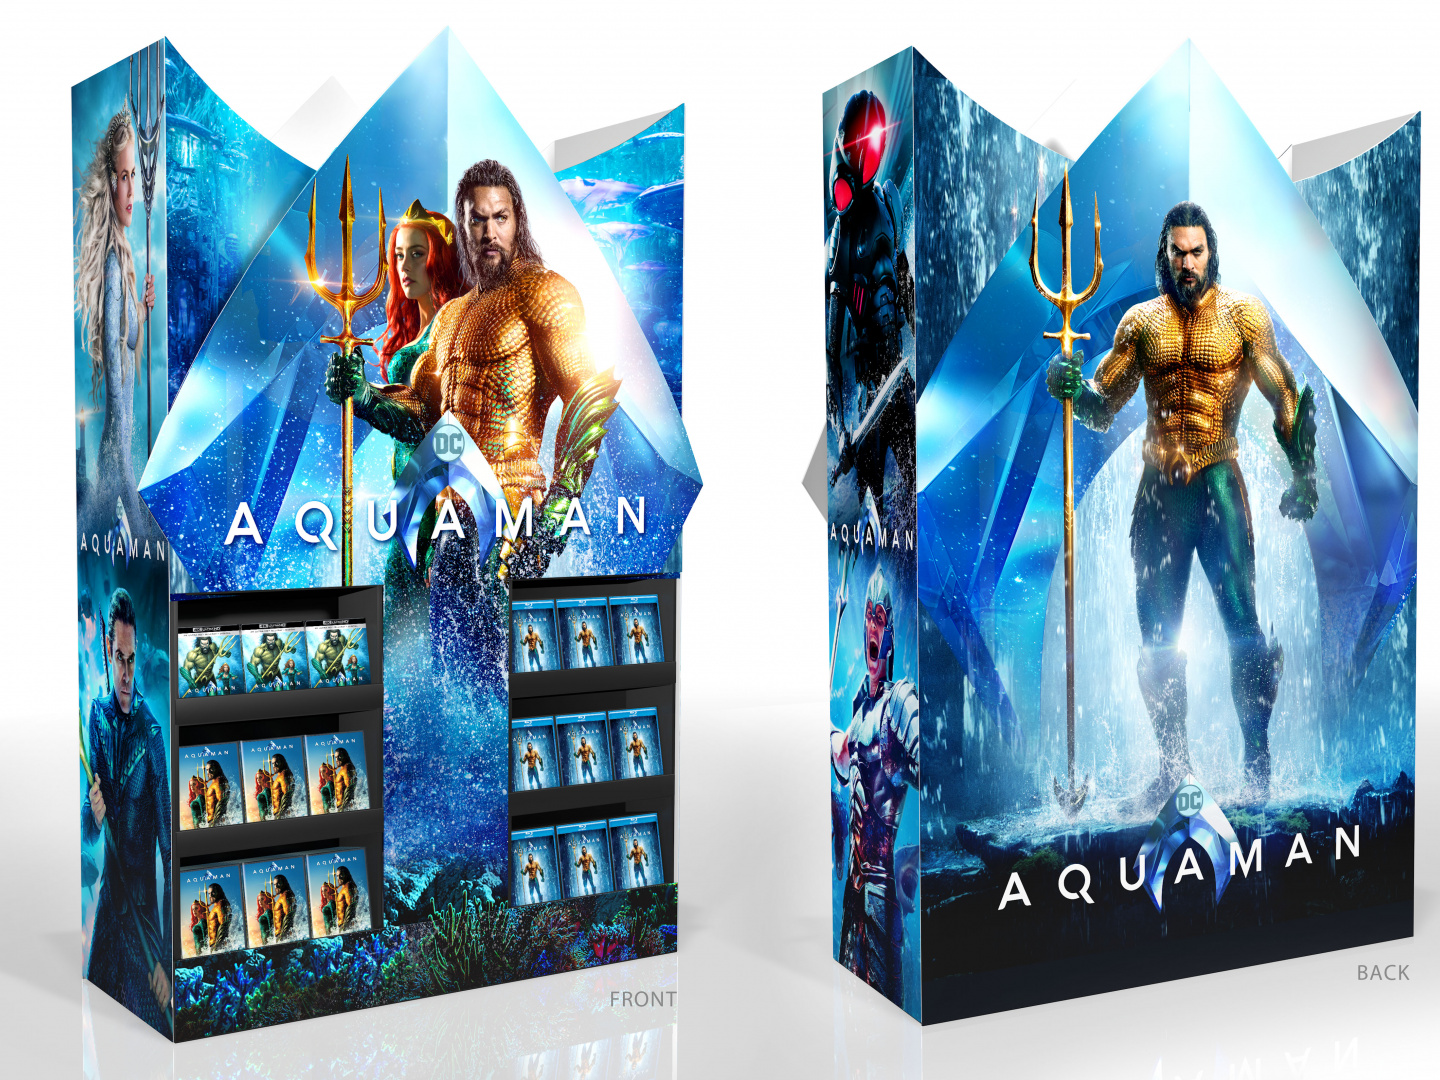 Image for Aquaman Home Entertainment Best Buy Display Mini Wow Cube